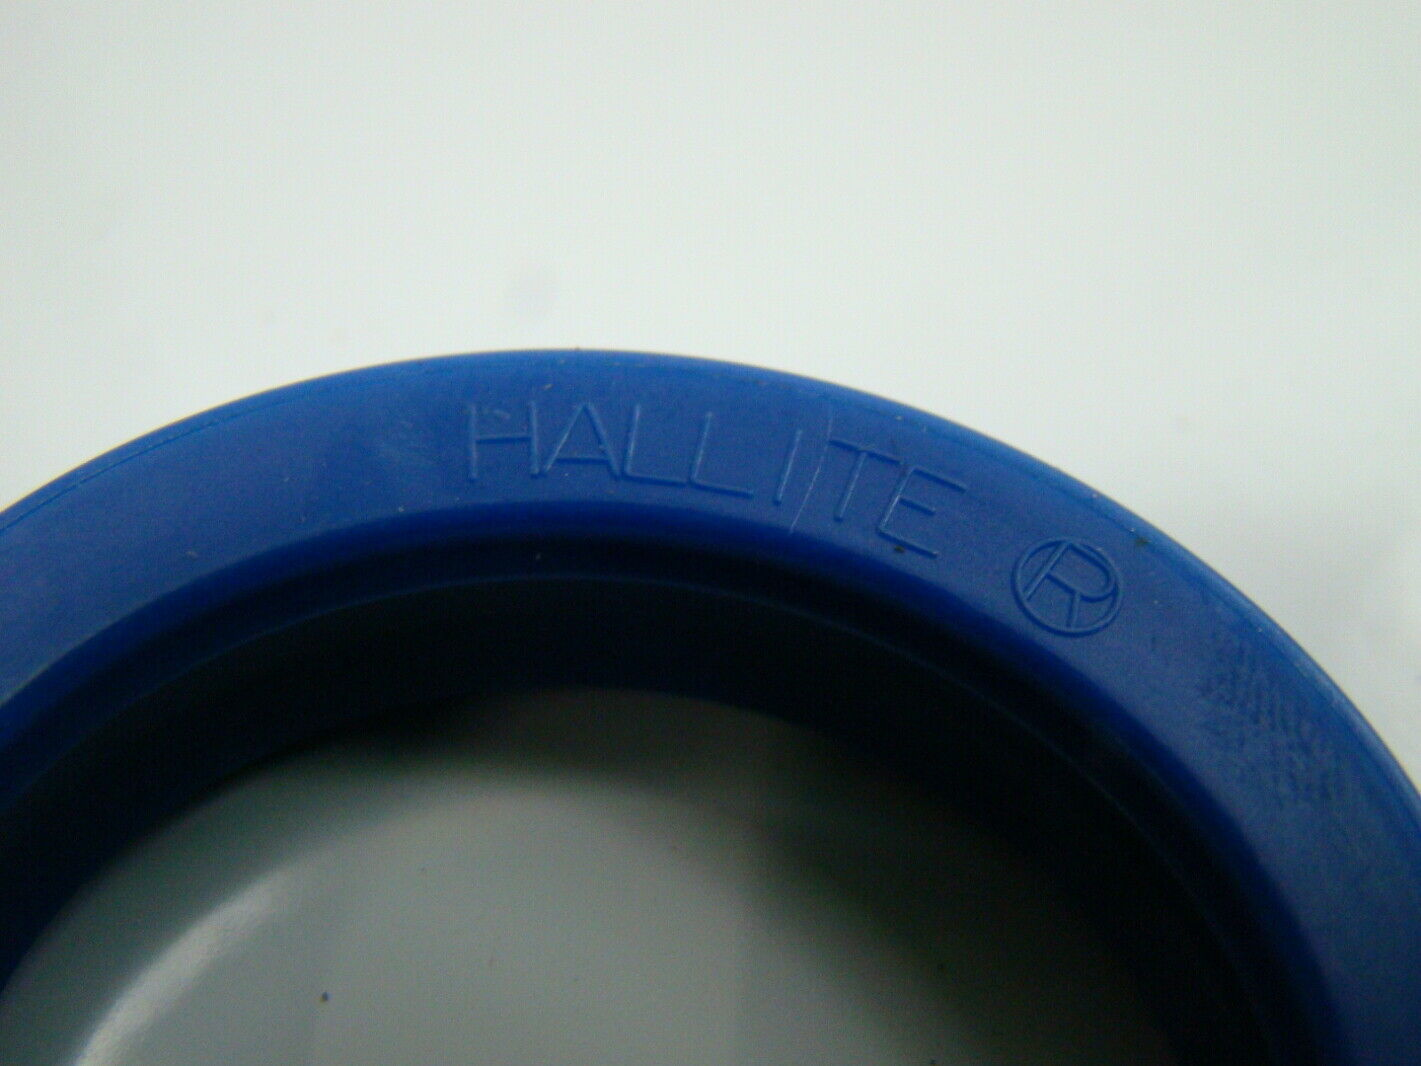 Hallite Seal Kit 1393741 290 Ebay